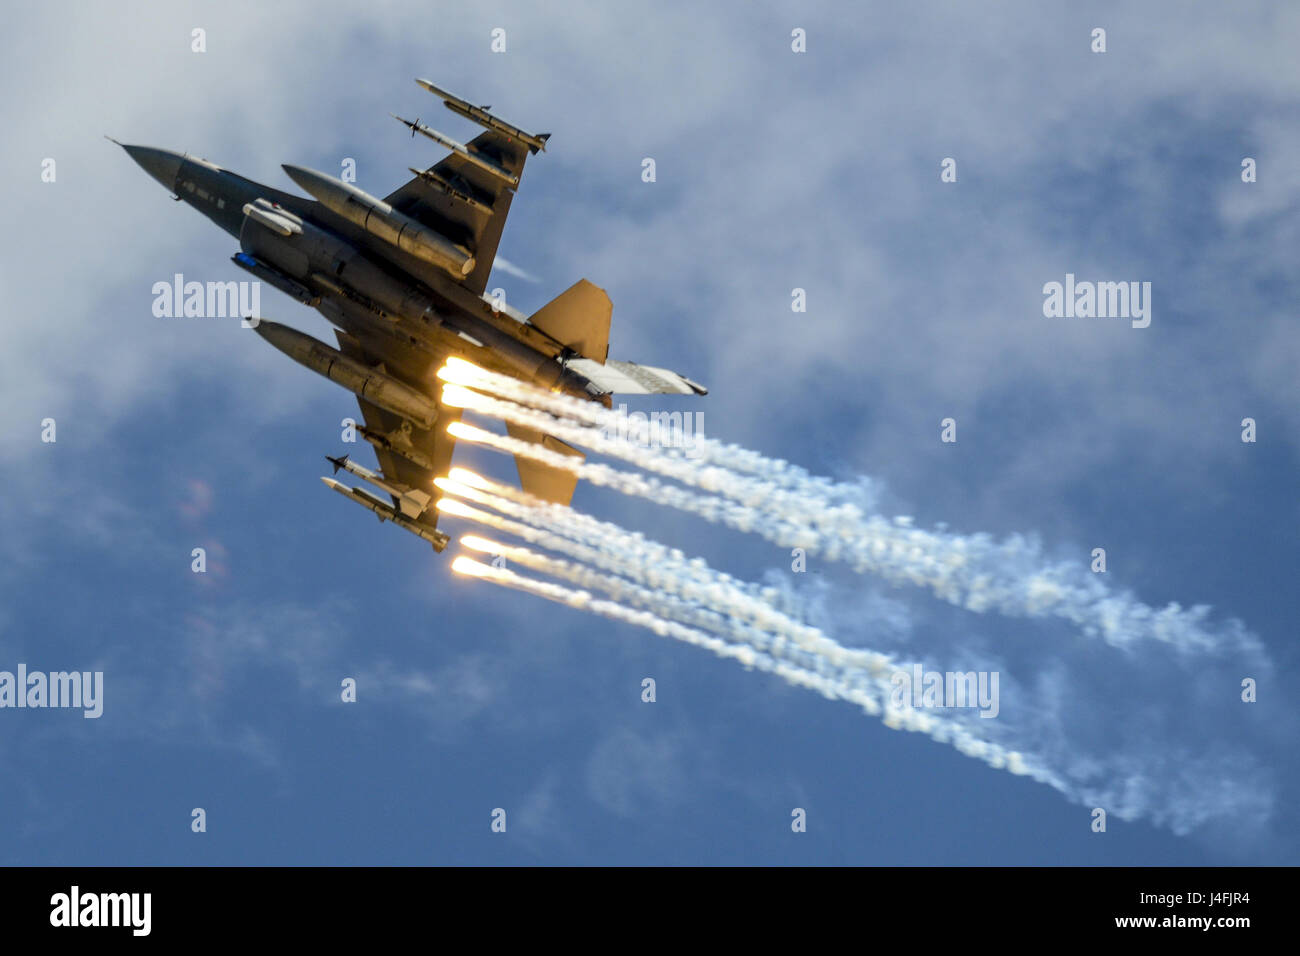 U.S. Air Force F-16 Fighting Falcon Banque D'Images